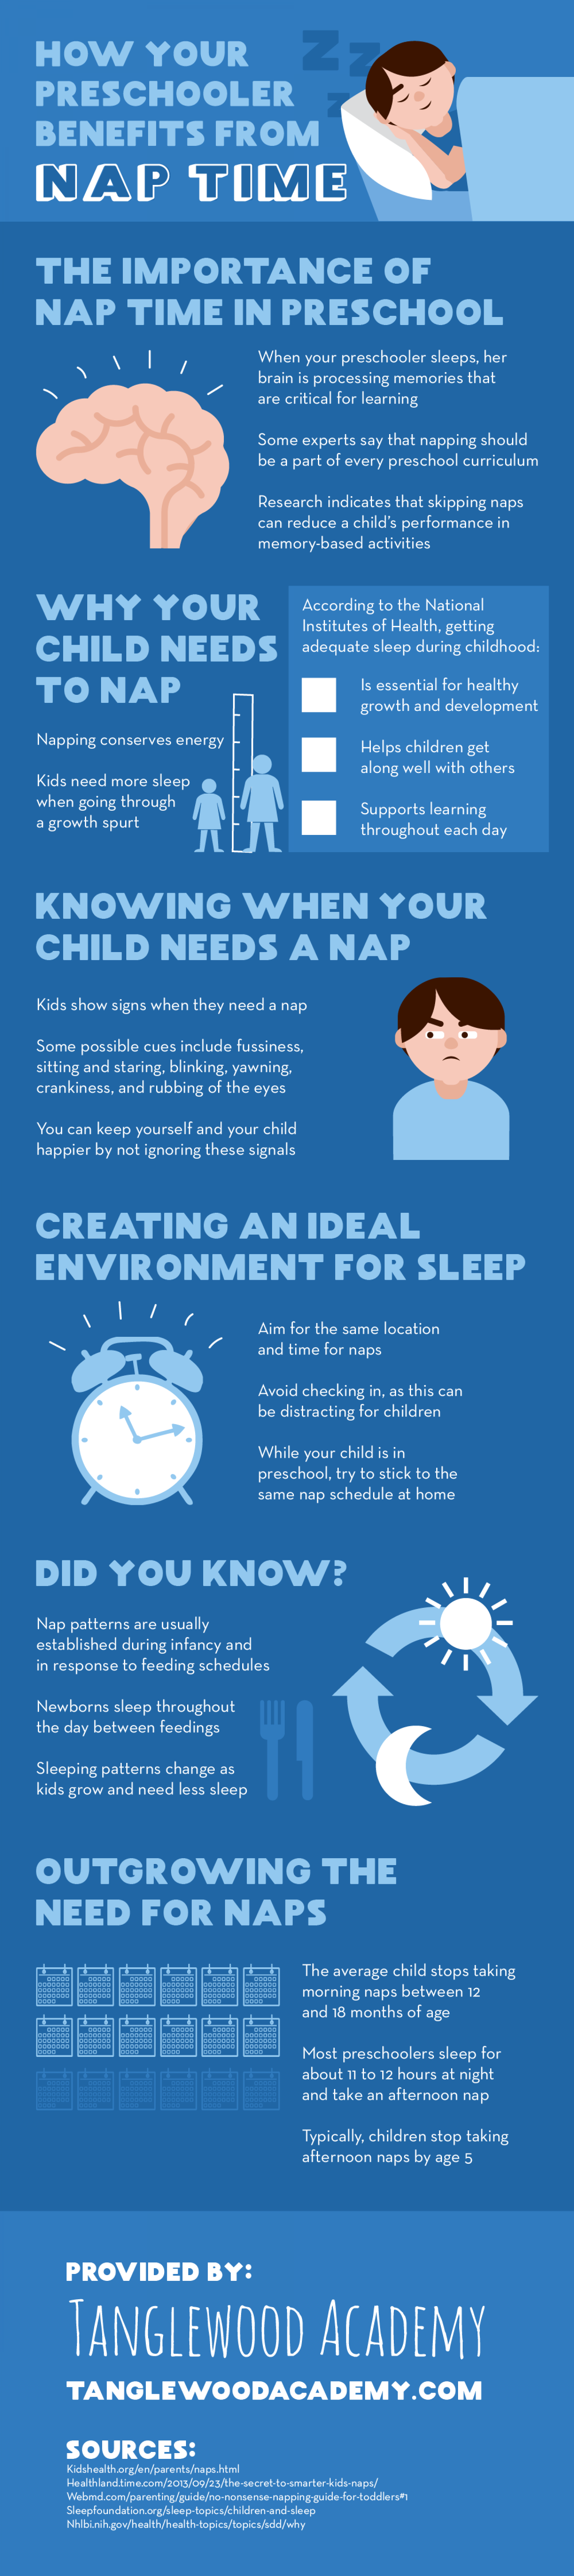 How Your Preschooler Benefits from Nap Time Infographic